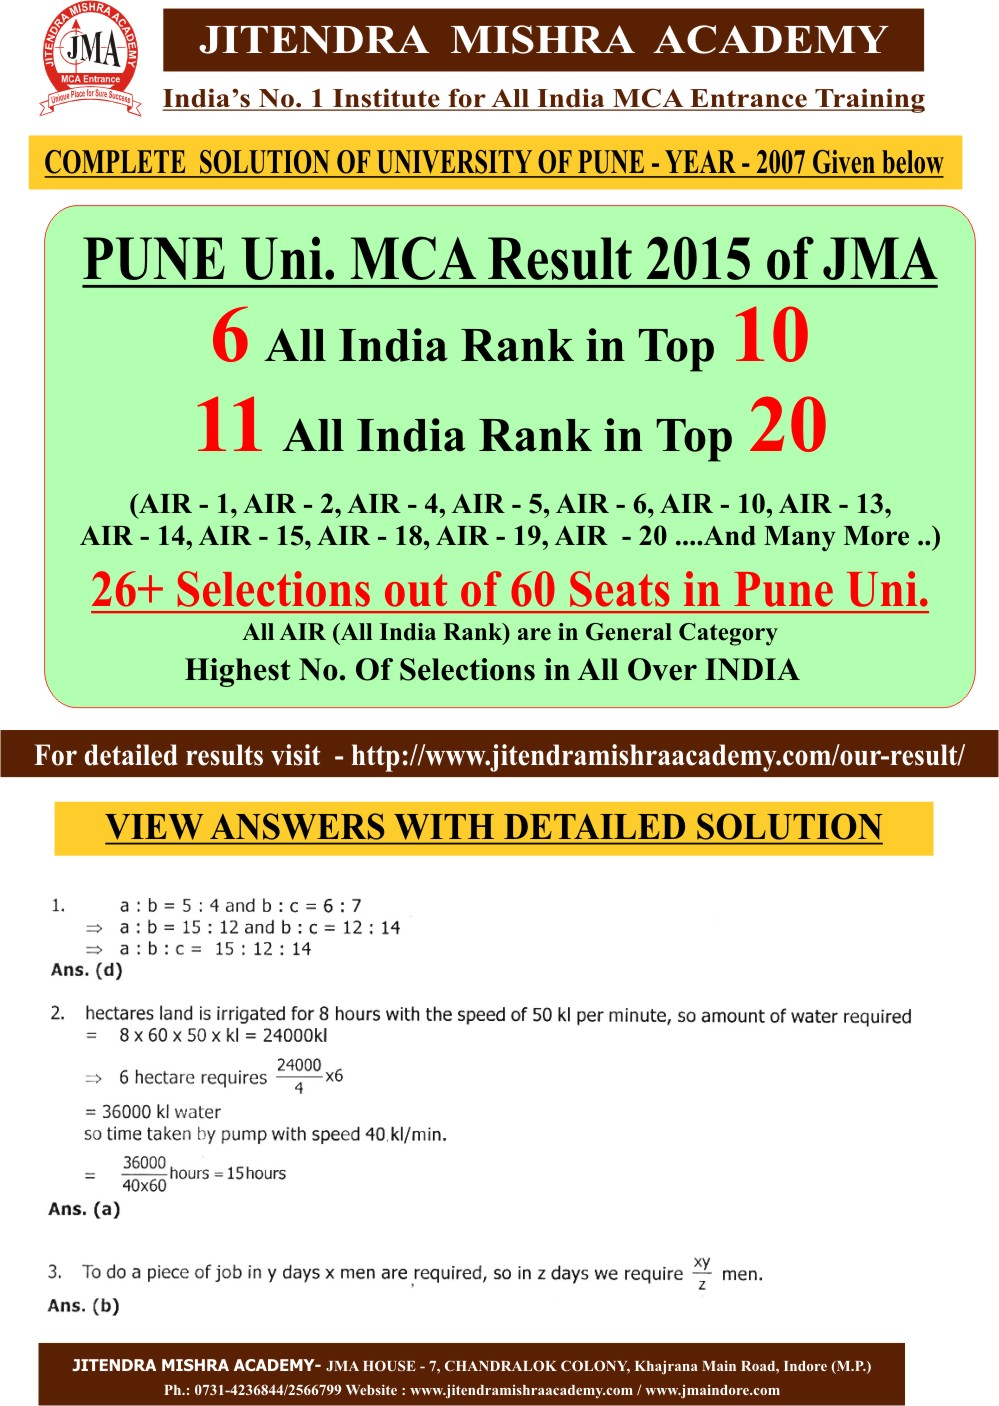 PUNE SOLUTION 2007 (FIRST PAGE)